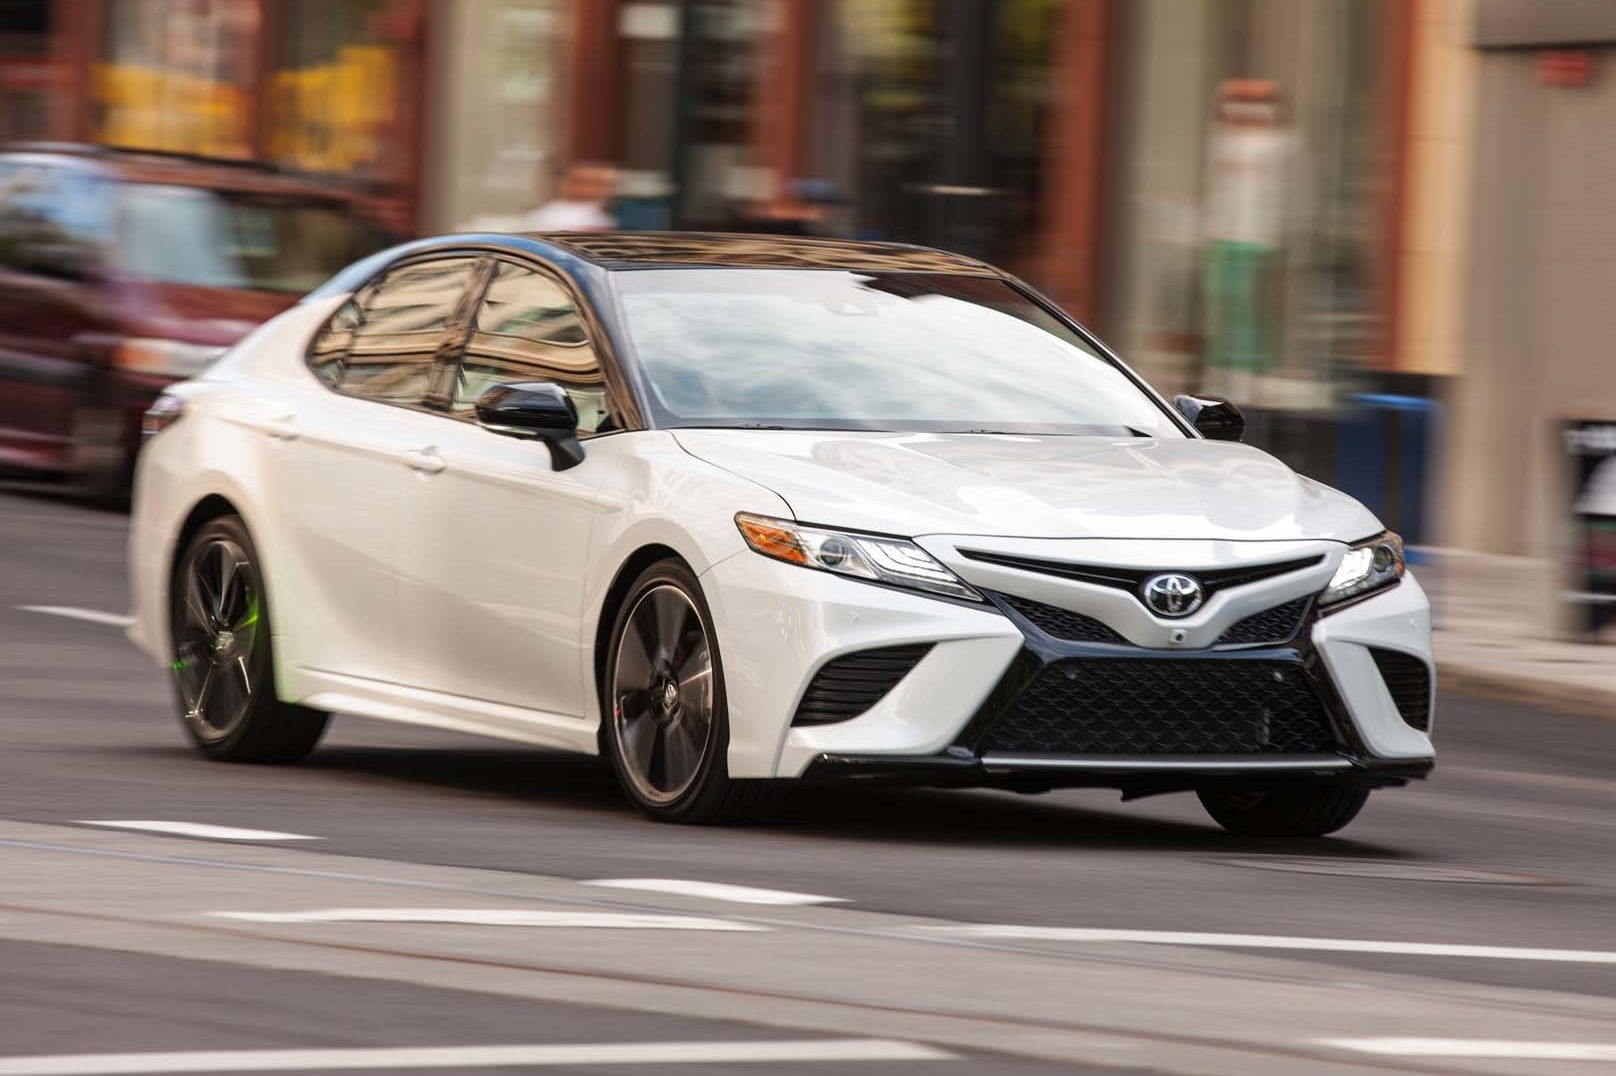 2018 Toyota Camry XSE Front Three Quarter In Motion 03 E1497985584514